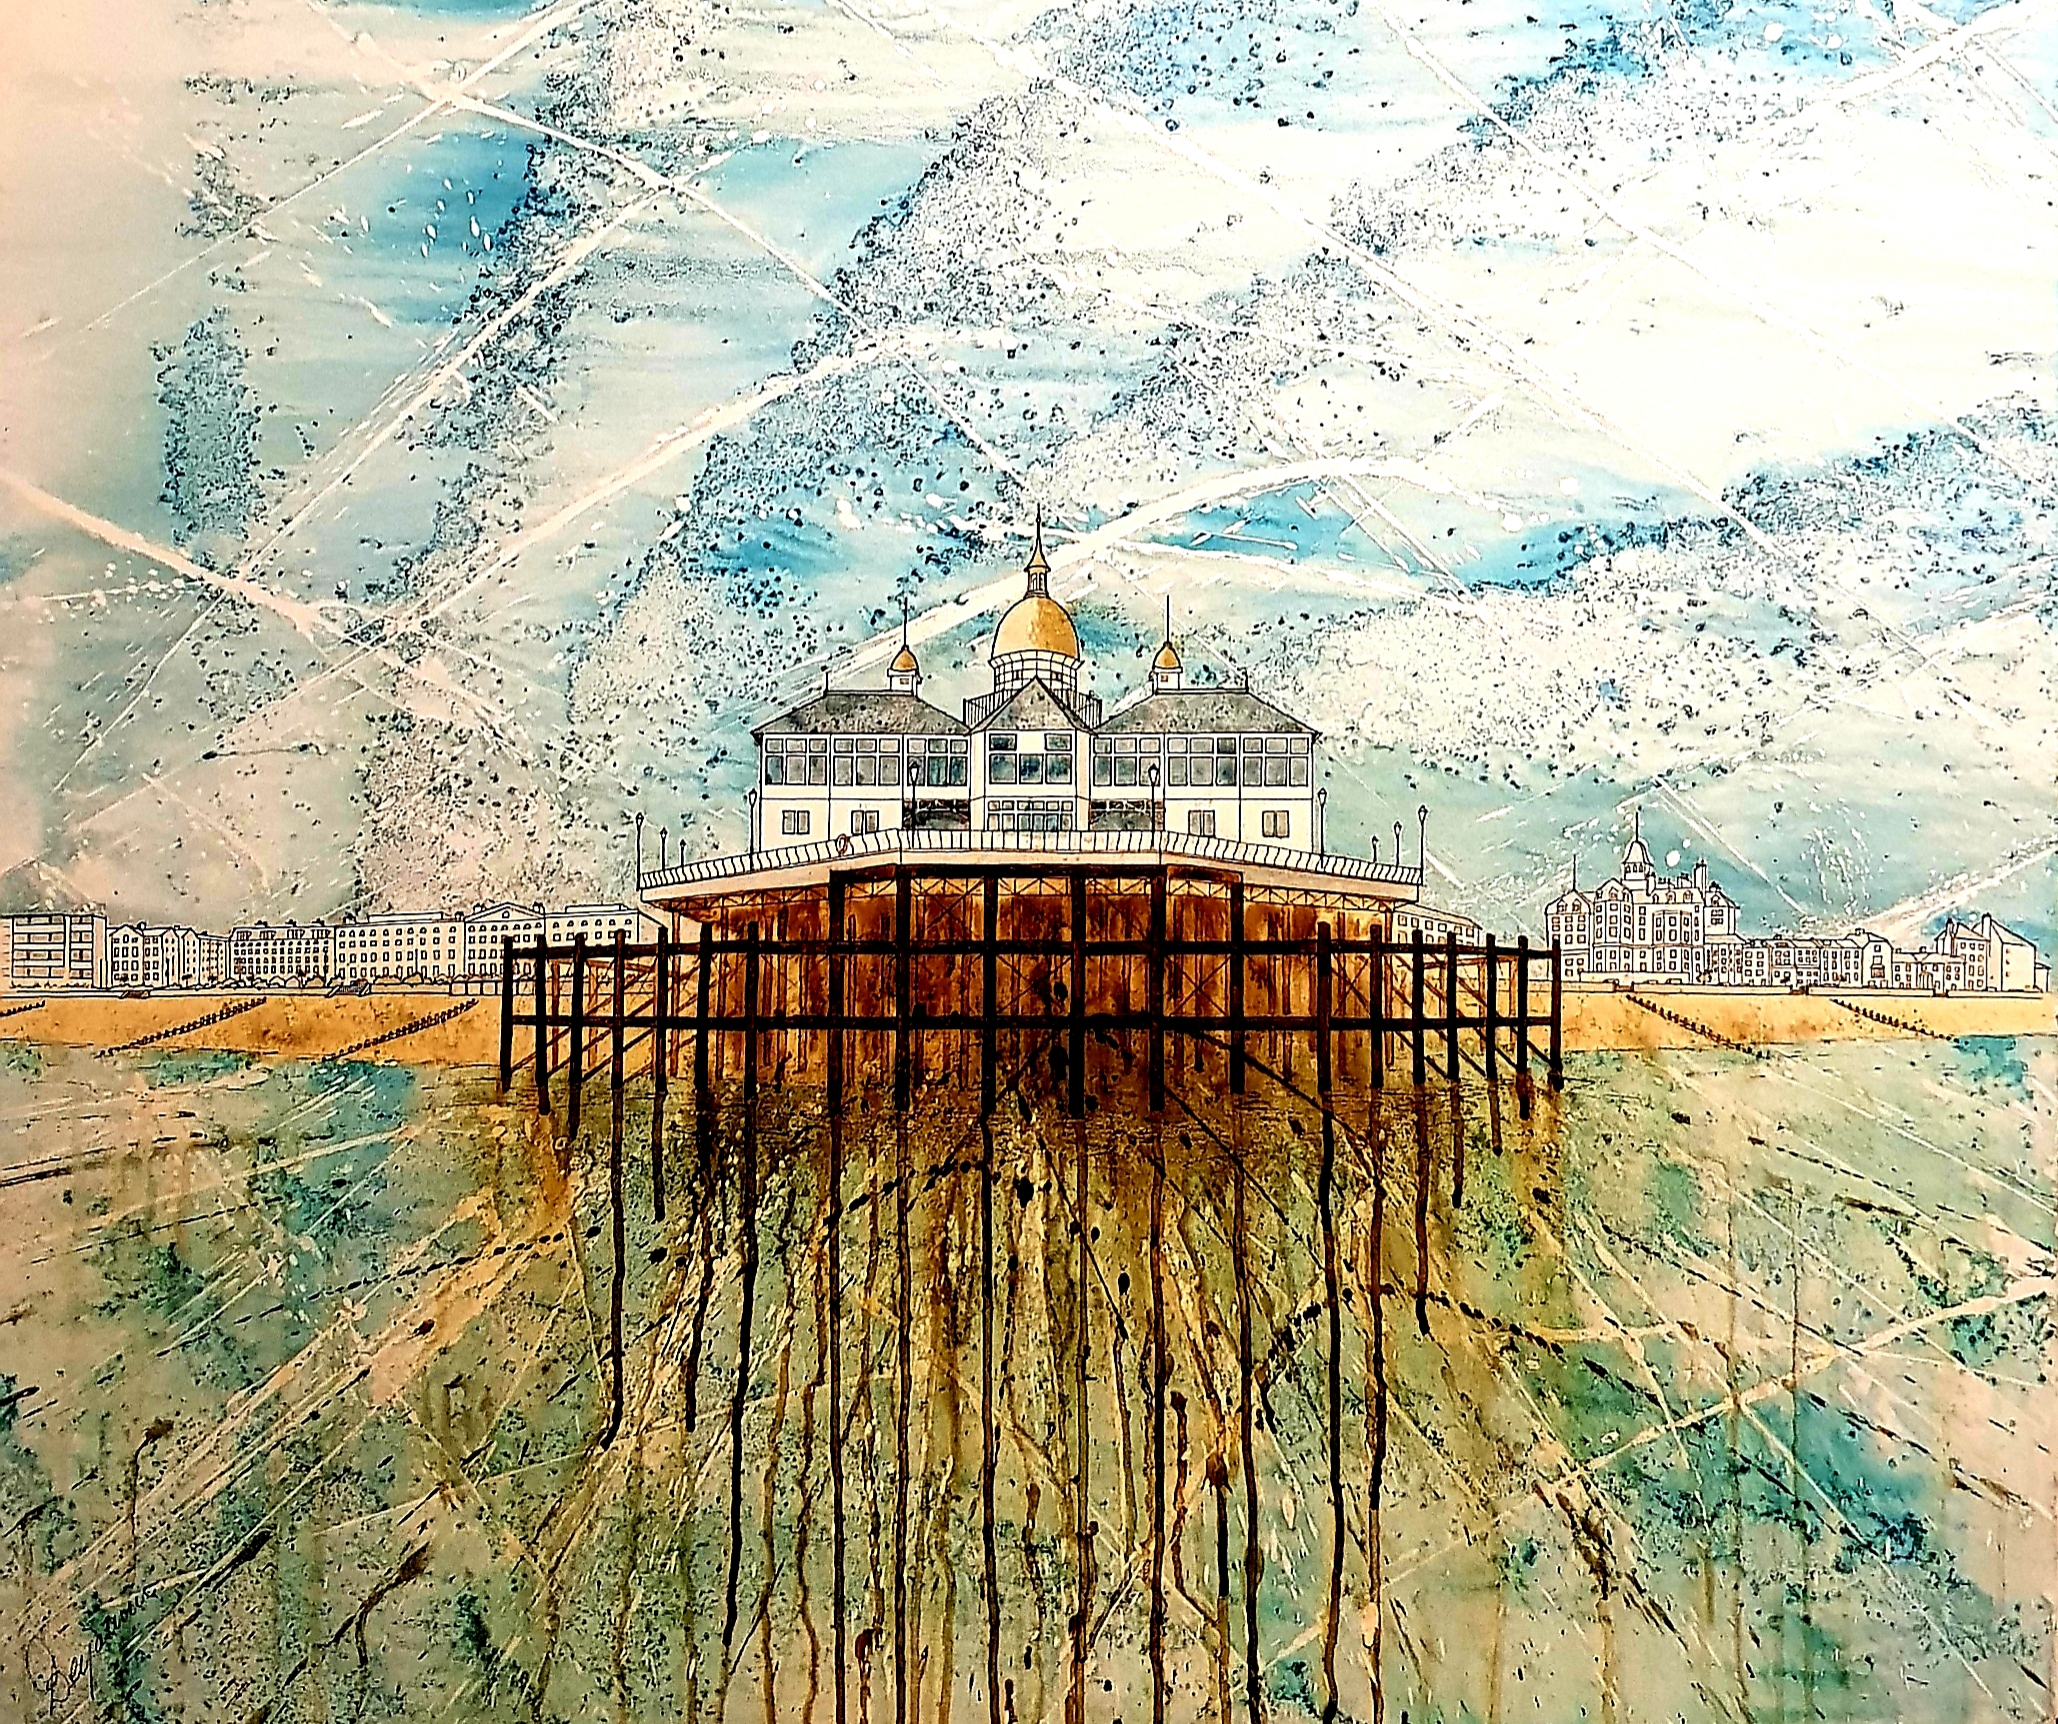 Eastbourne Pier from my Paddleboard 100 x 100cm pen and ink